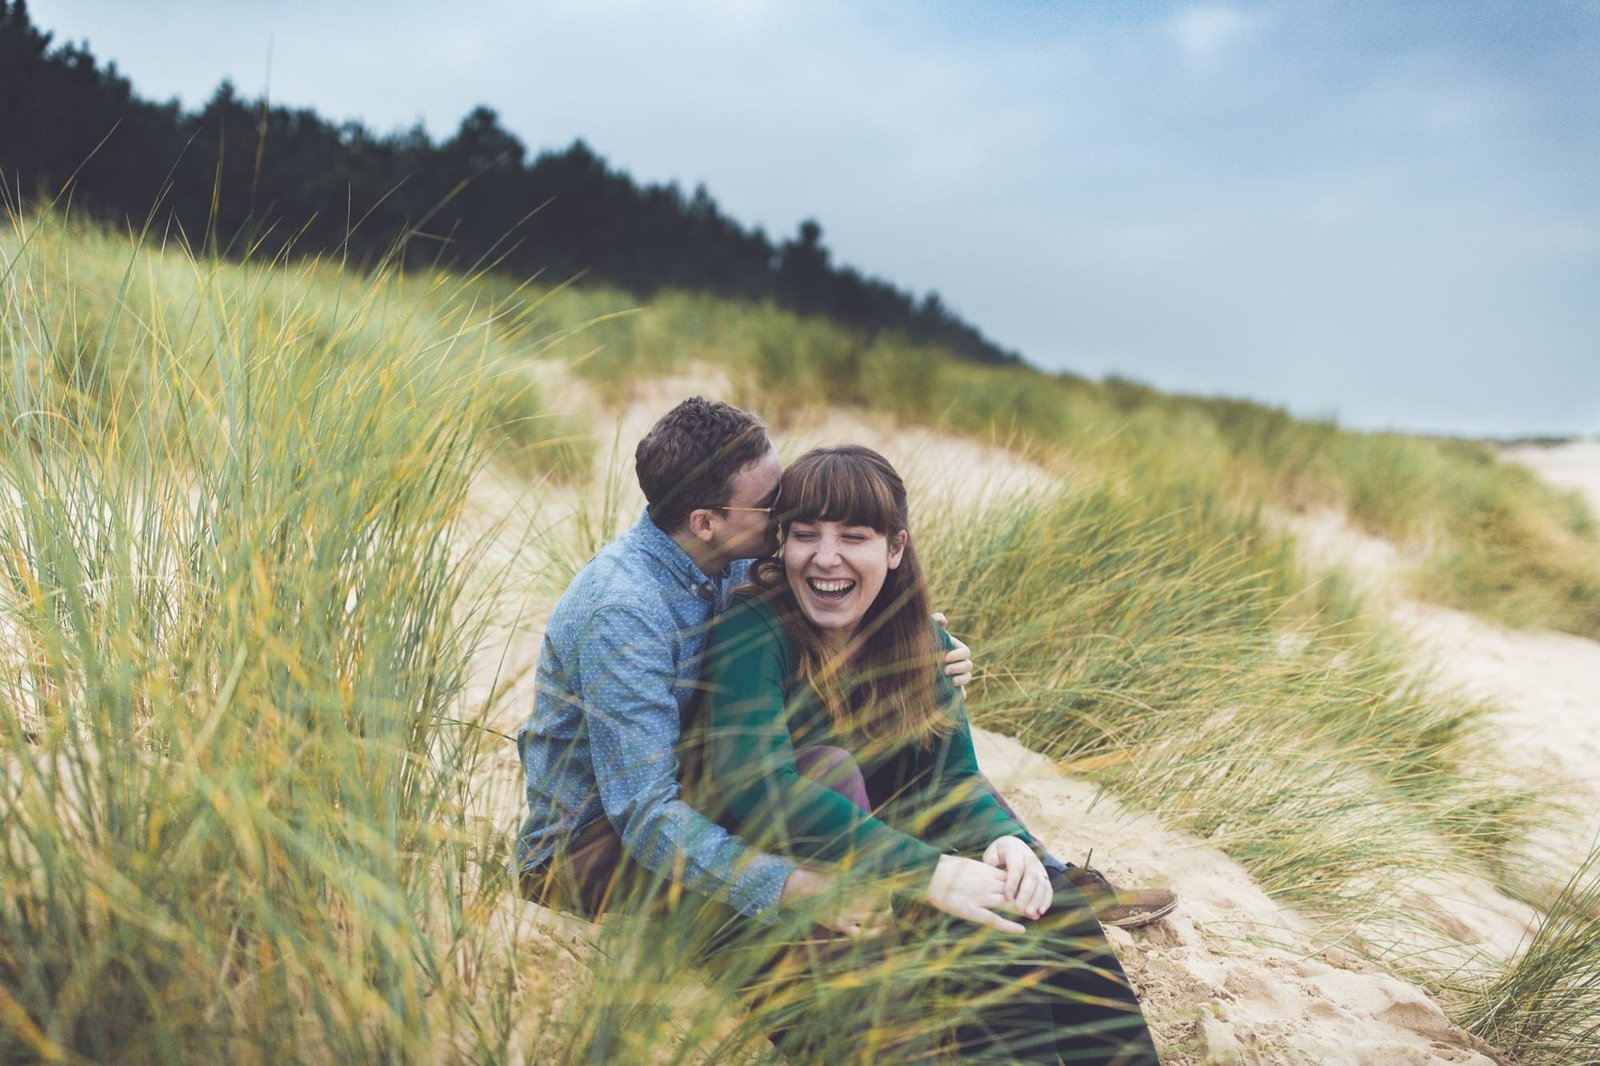 In the sand dunes at Wells-next-the-sea Norfolk we see a happy engaged couple laugh as they sit and talk.